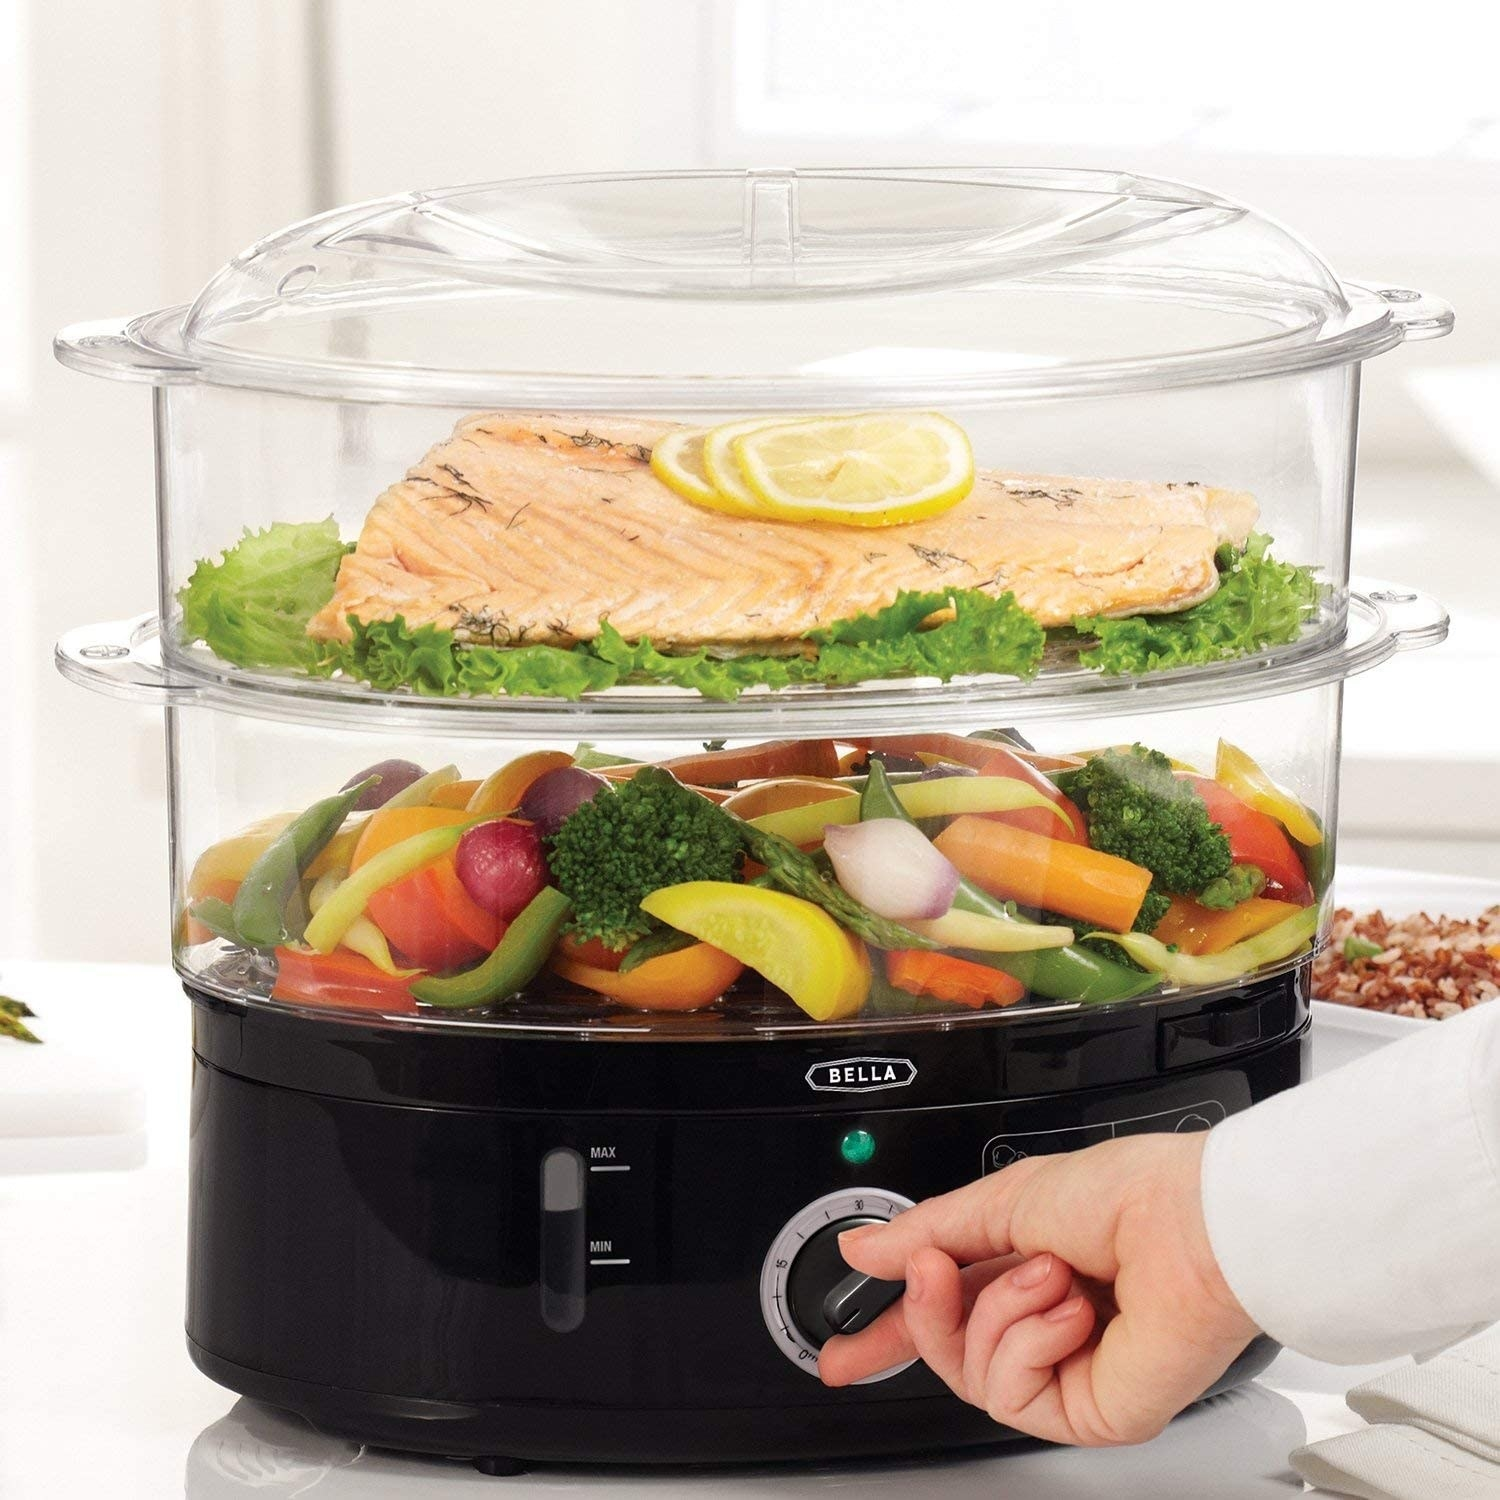 A steam machine has veggies on the bottom layer and salmon on the top